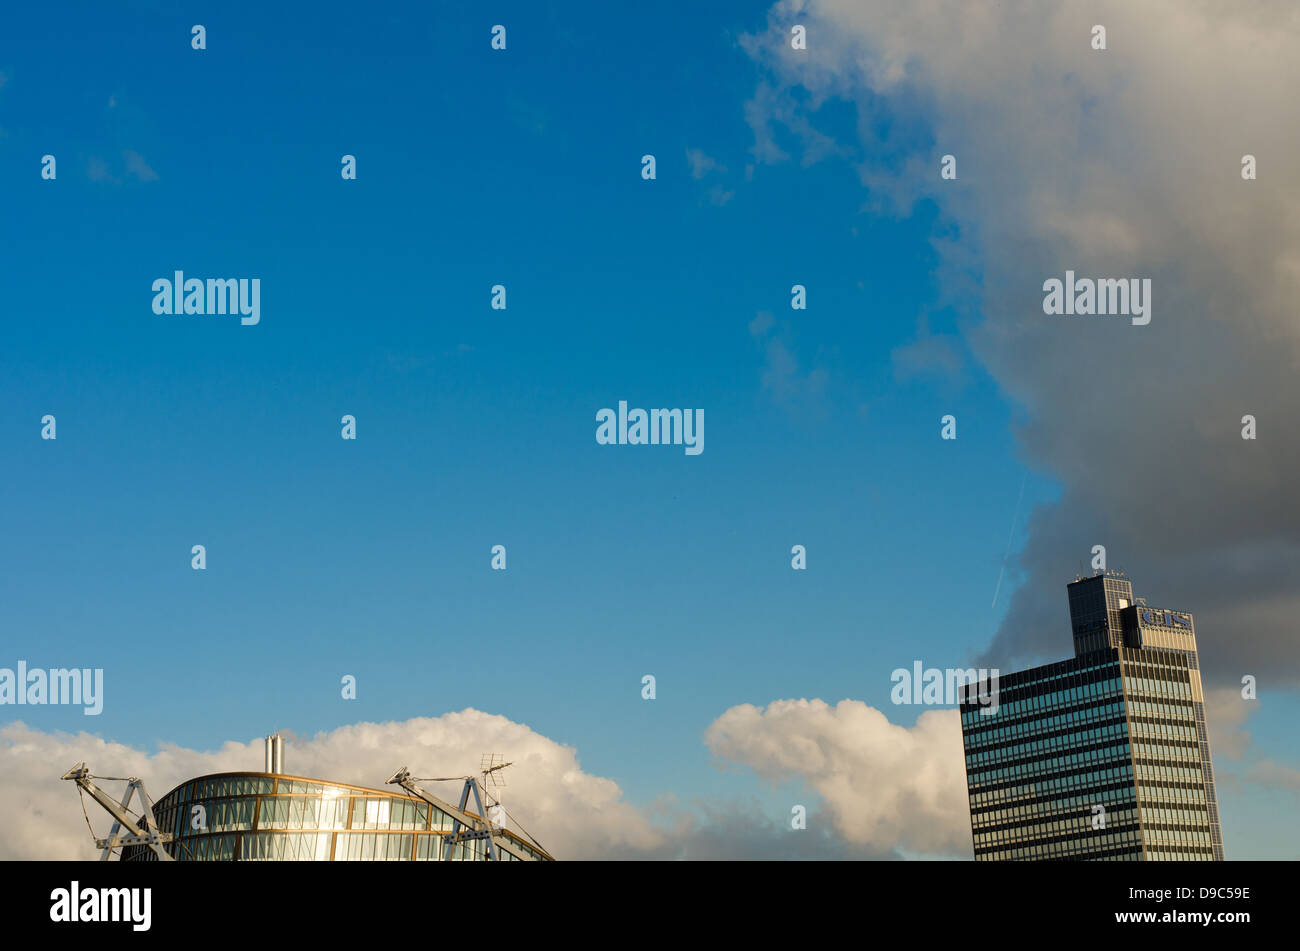 The new Co-Operative building in Angel Square, Manchester with the Old CIS tower in the backdrop - Stock Image